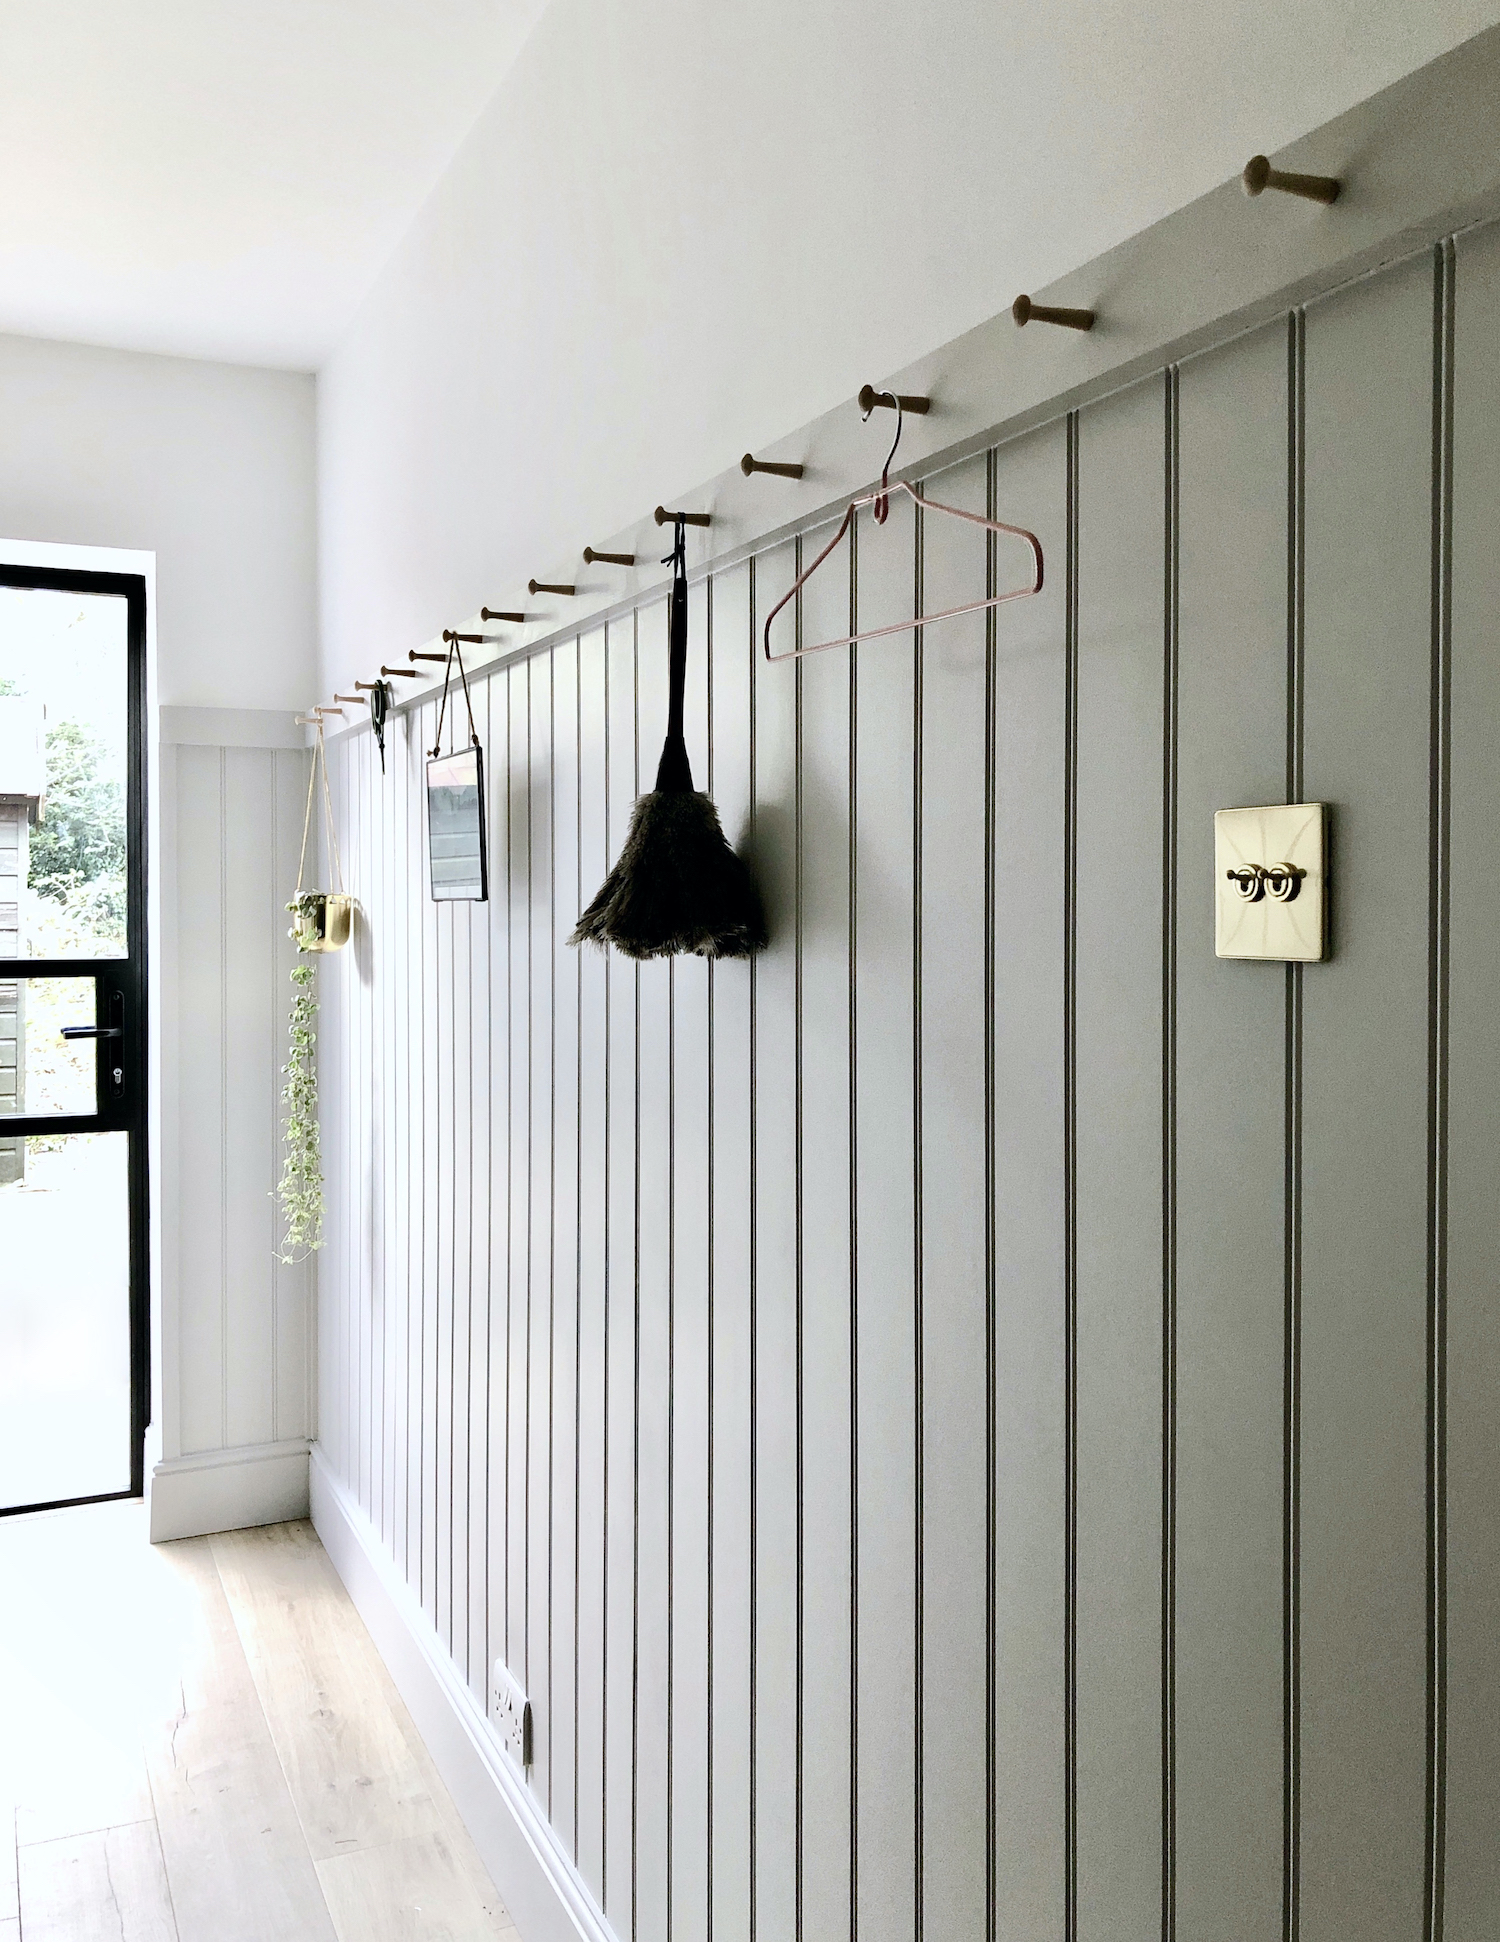 Utility laundry room design with peg rail and black aluminium glazed door. Design by First Sense Interiors